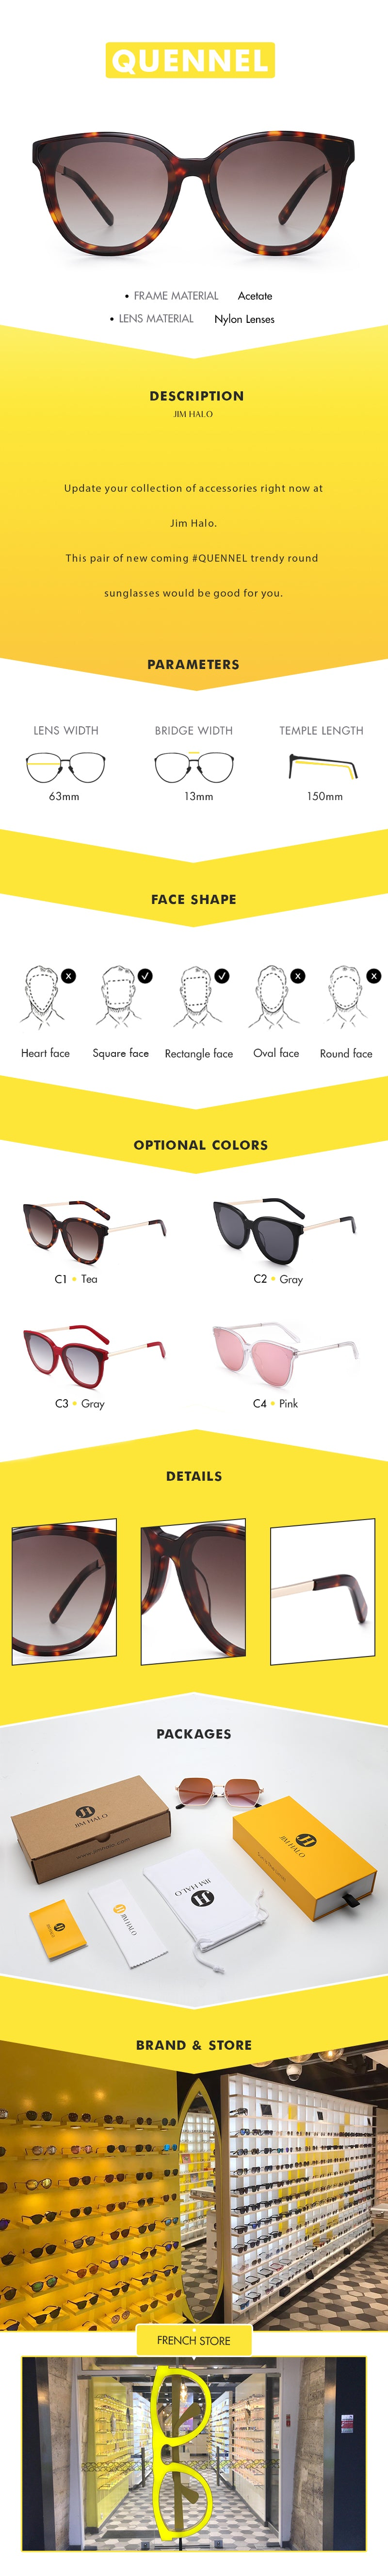 Update your collection of accessories right now at Jim Halo.  This pair of new coming #QUENNEL trendy round sunglasses would be good for you.